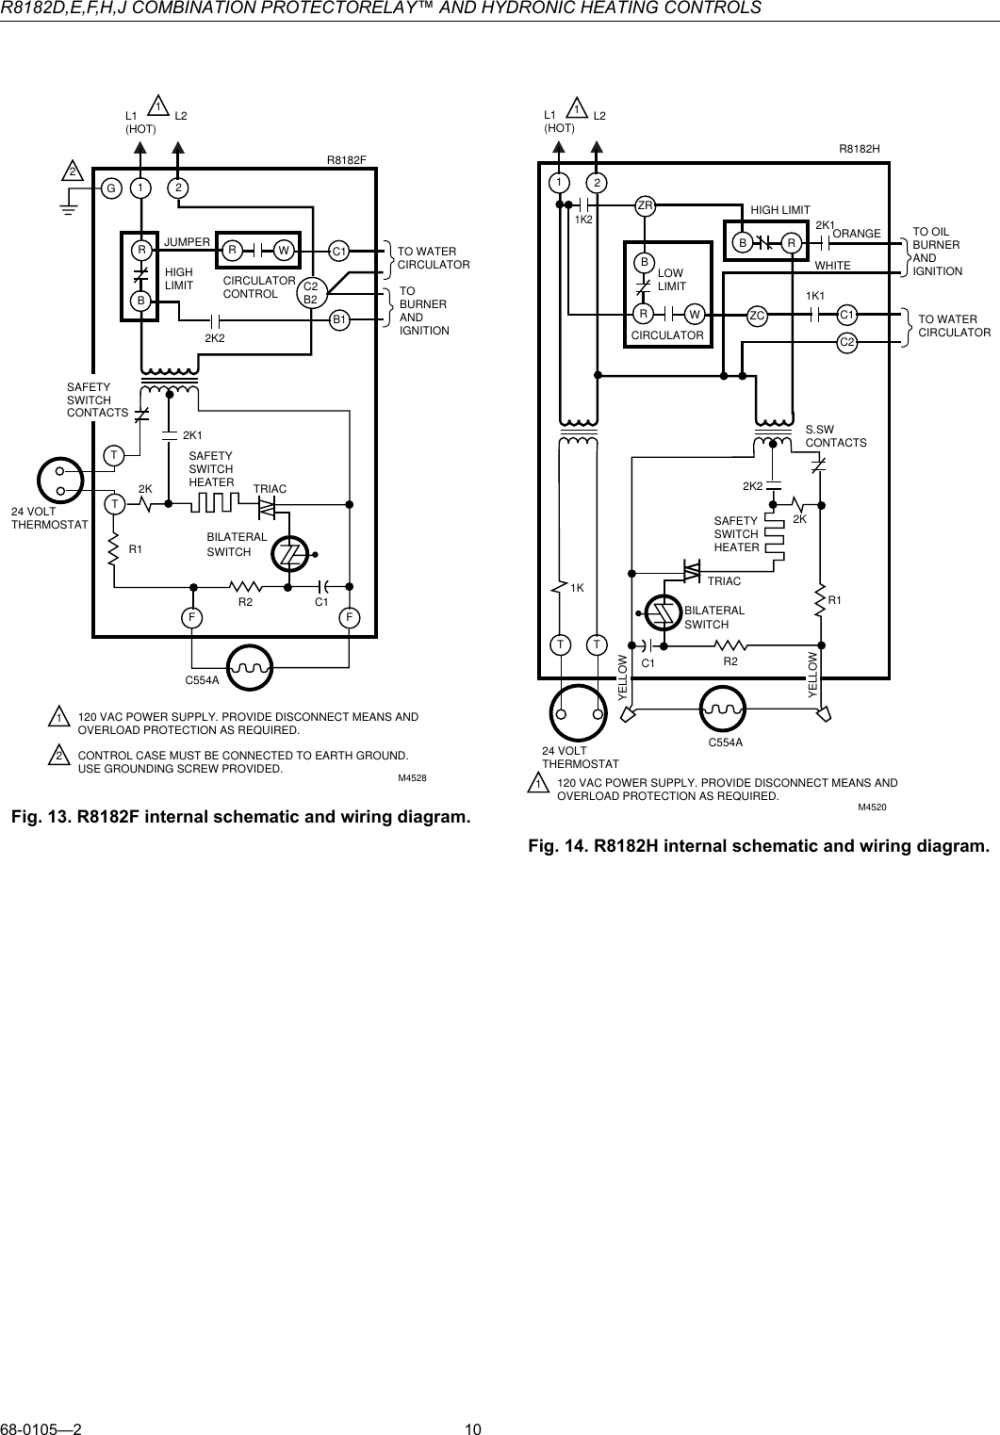 medium resolution of honeywell r8182d users manual 68 0105 r8182d e f h j combination protectorelay and hydronic heating controls